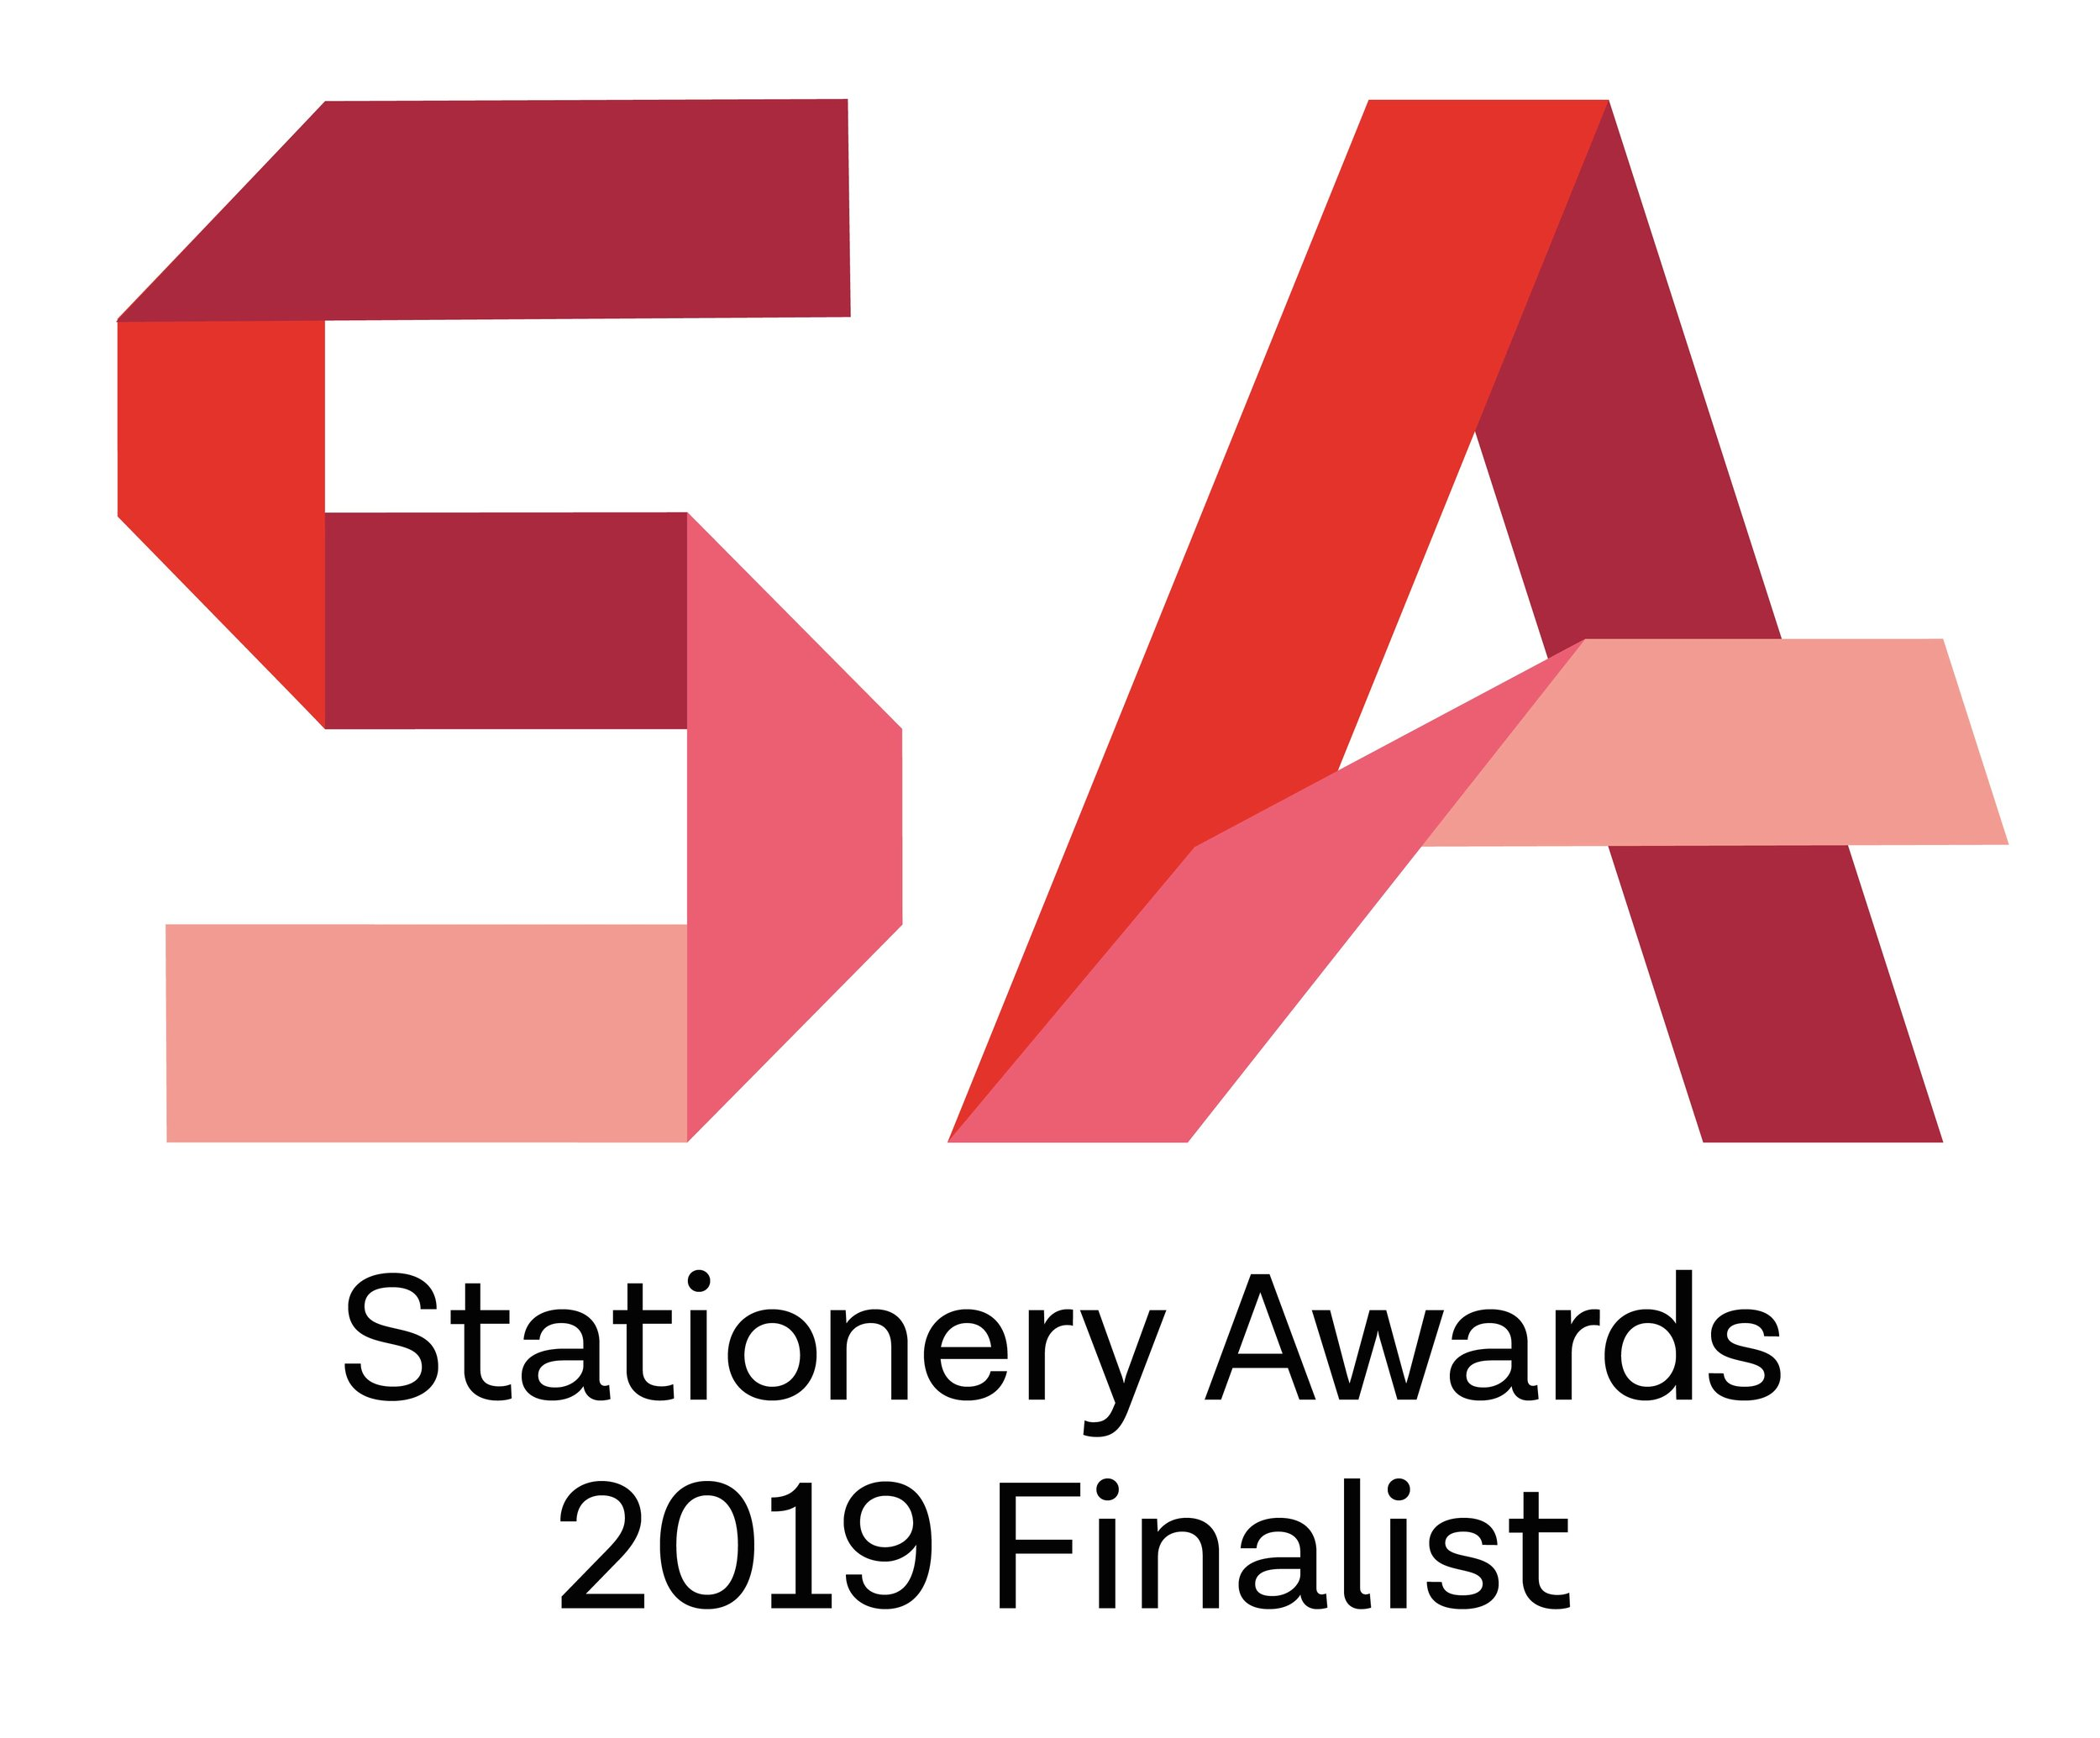 Stationery Awards Finalist logo 2019.jpg